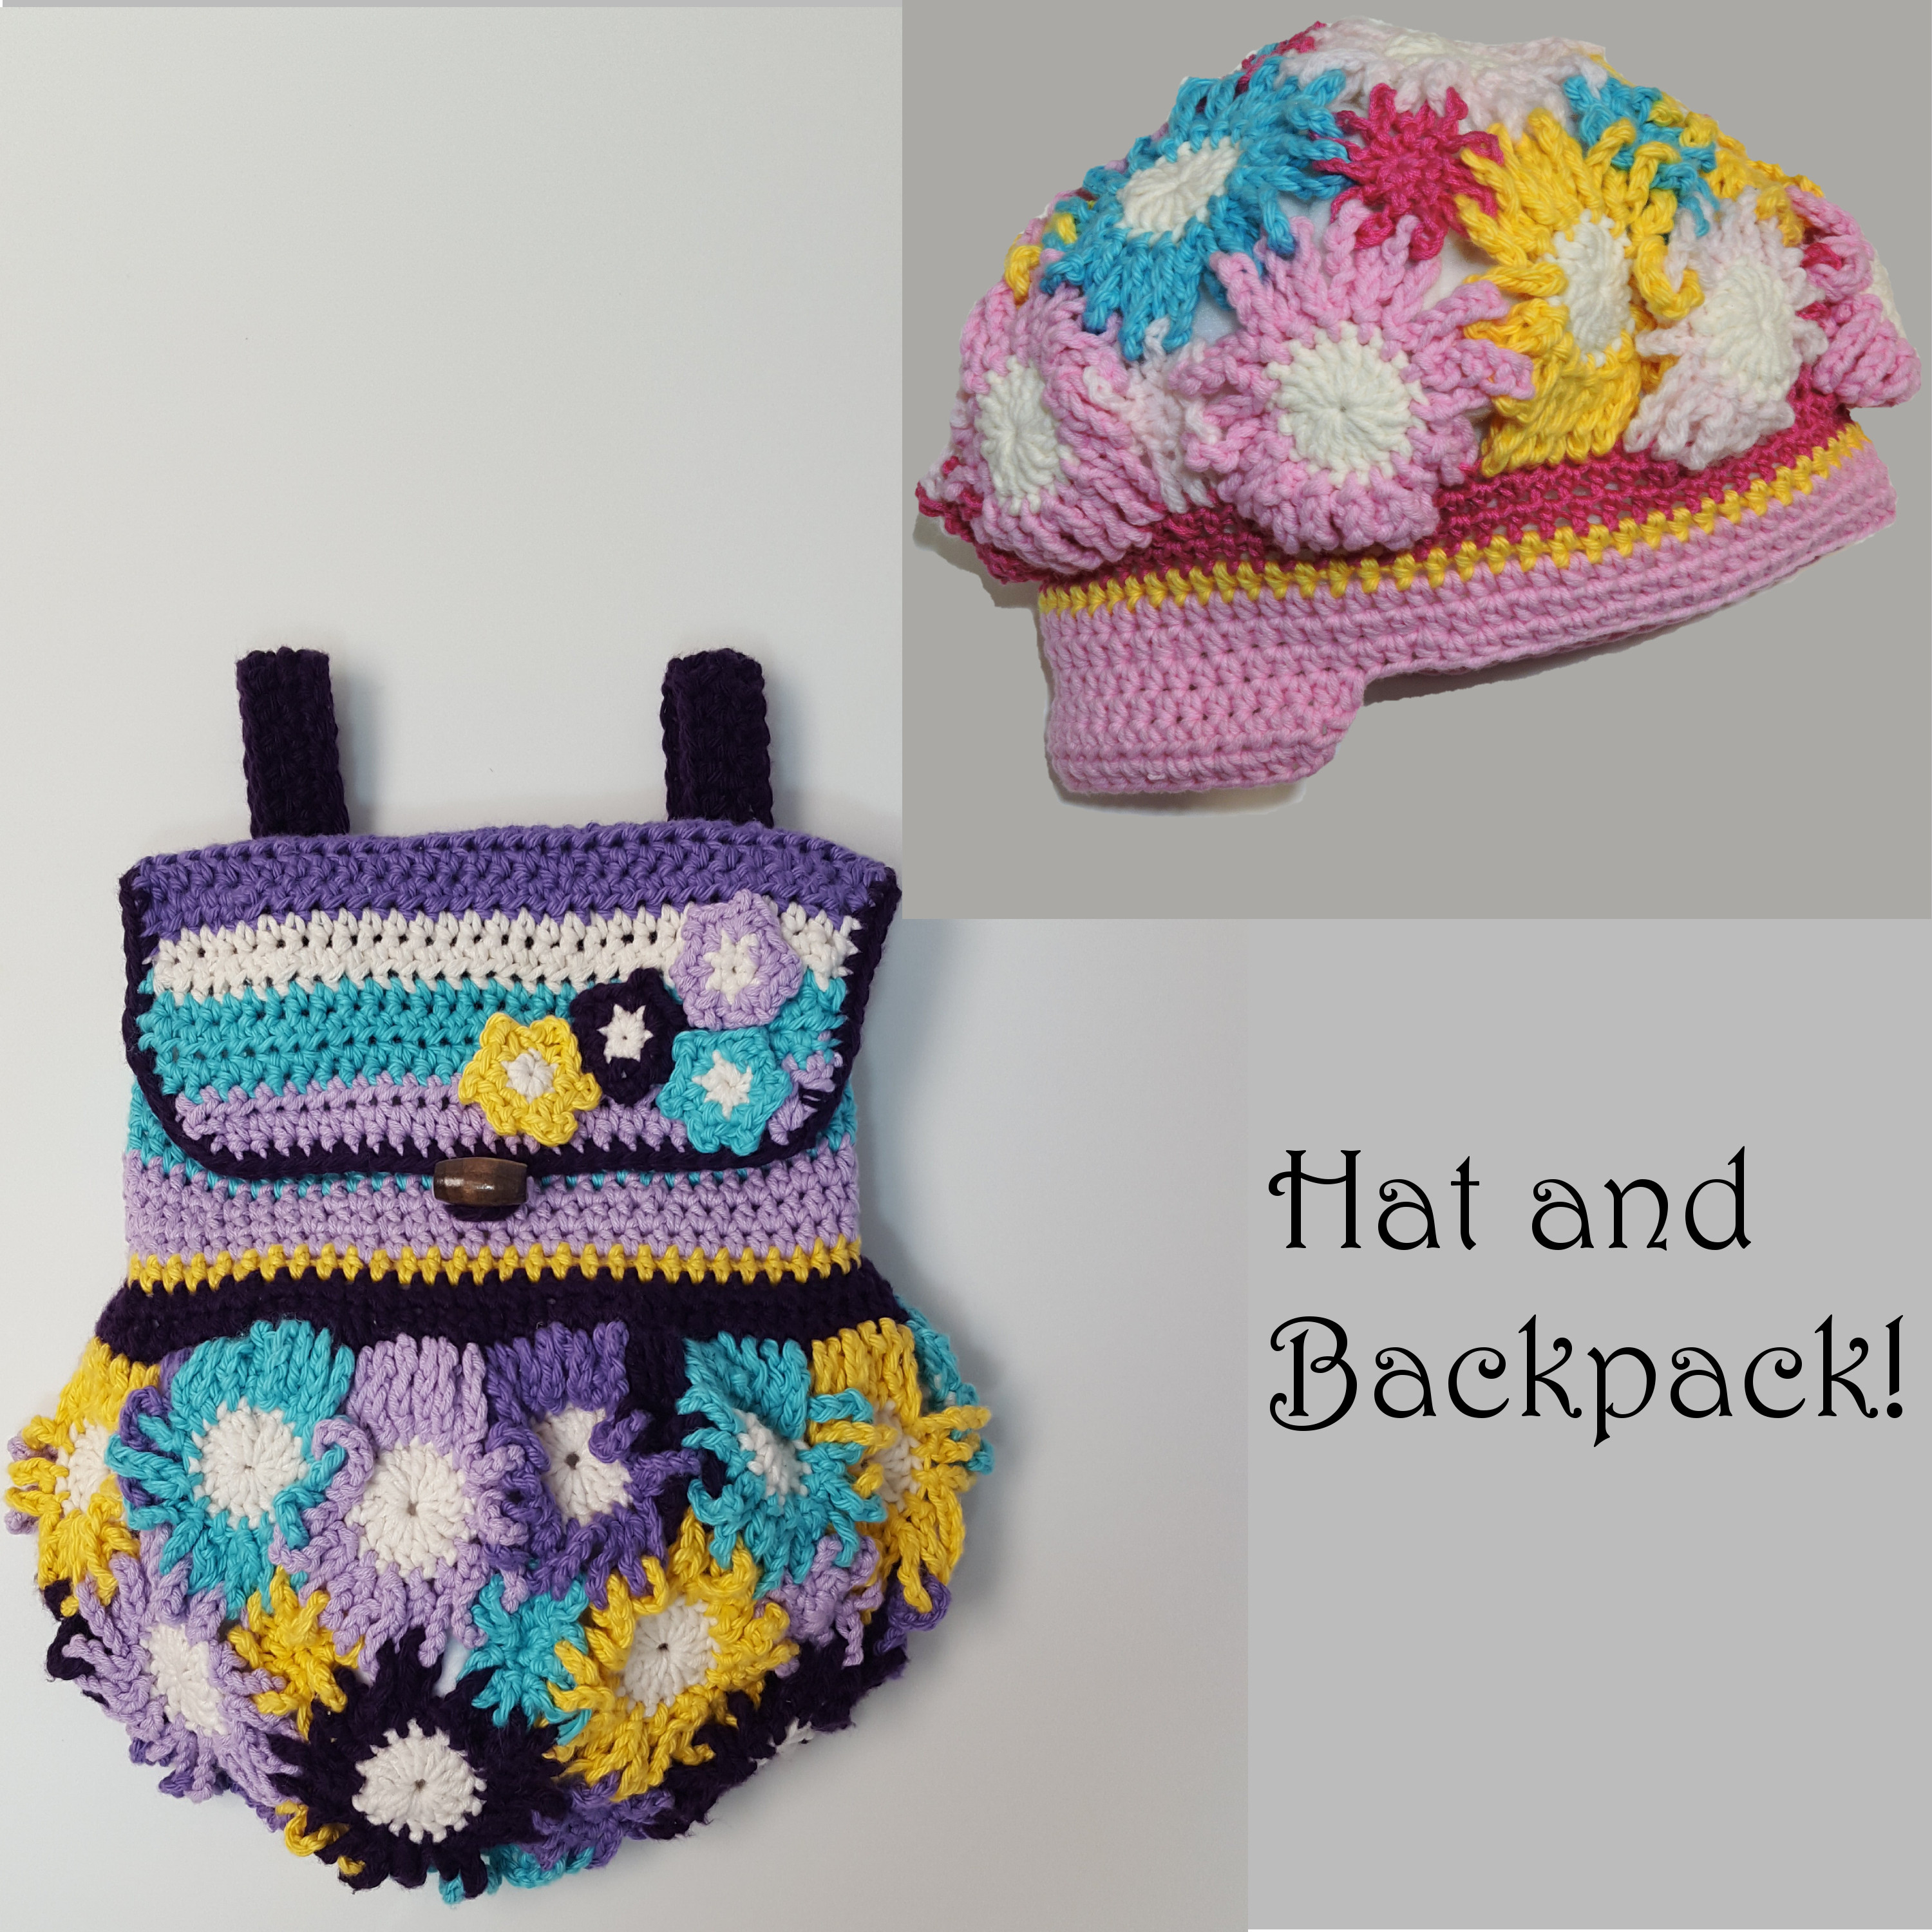 hat and backpack